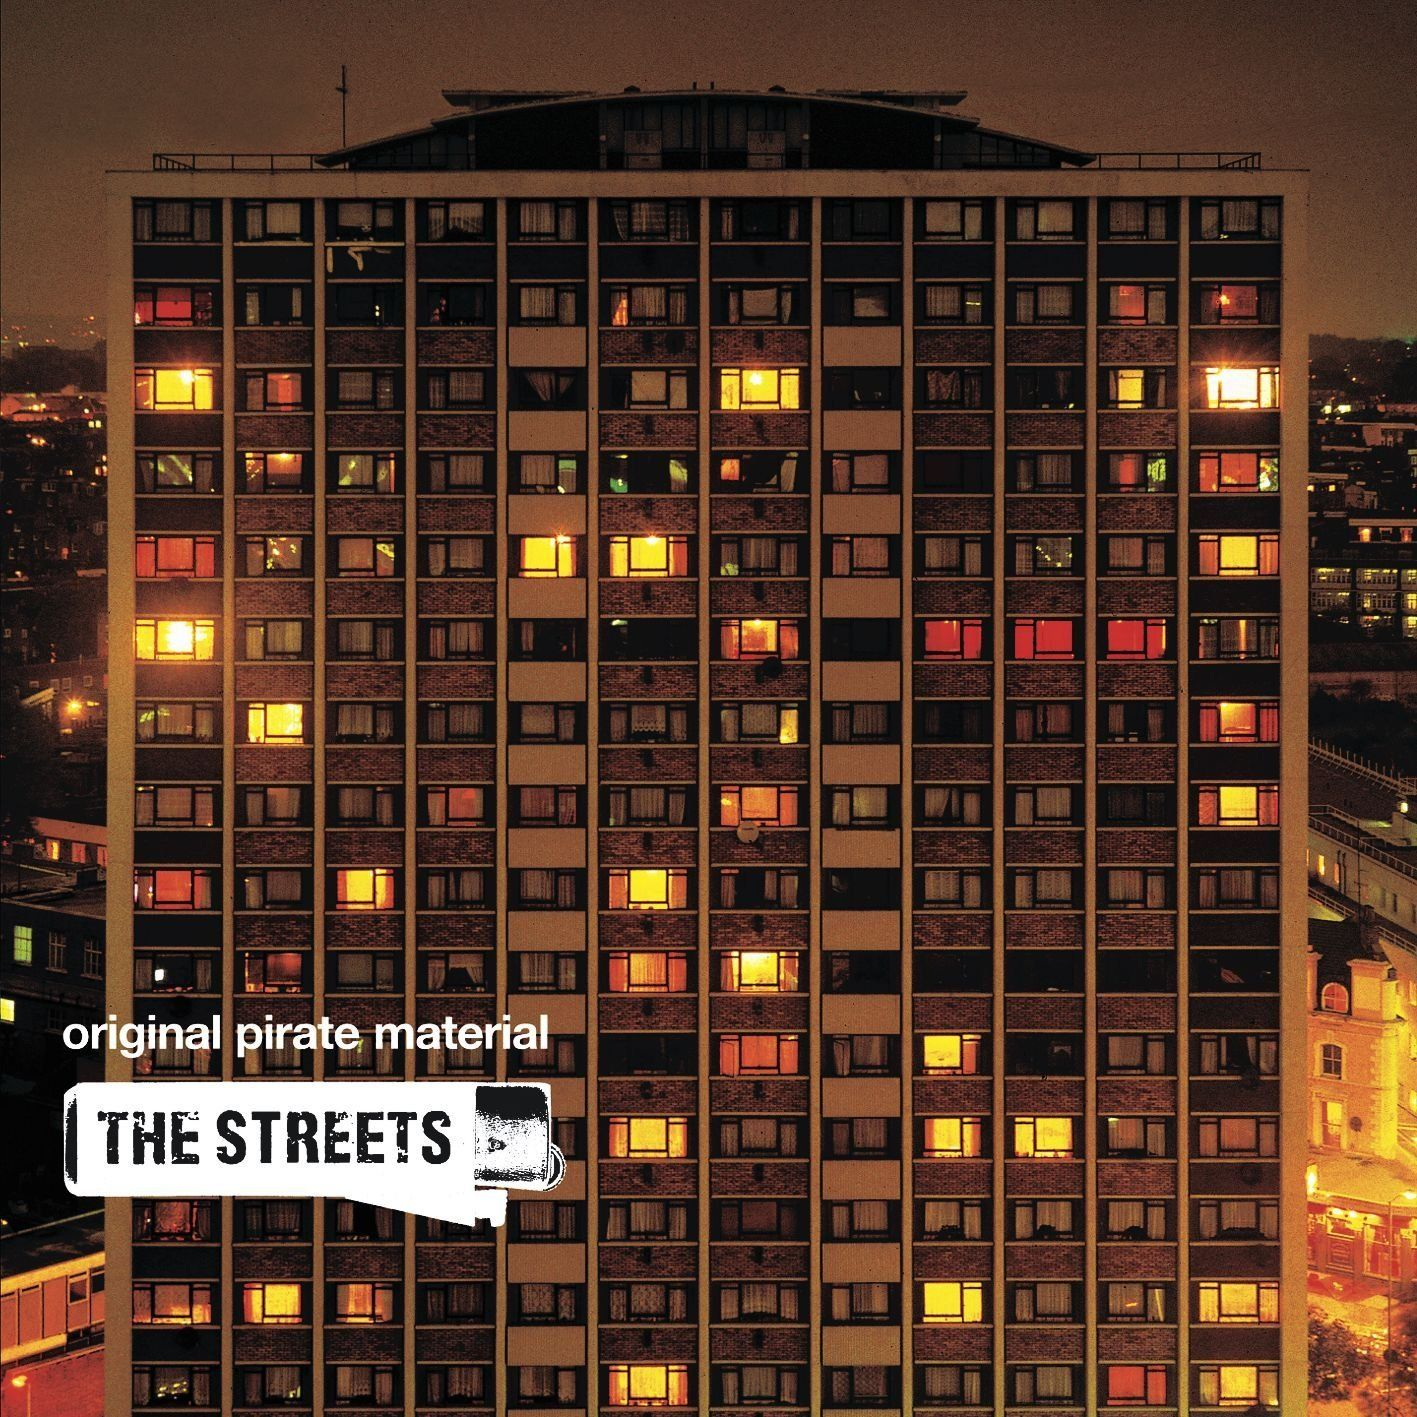 The Streets #garage #london #streets #mikeskinner